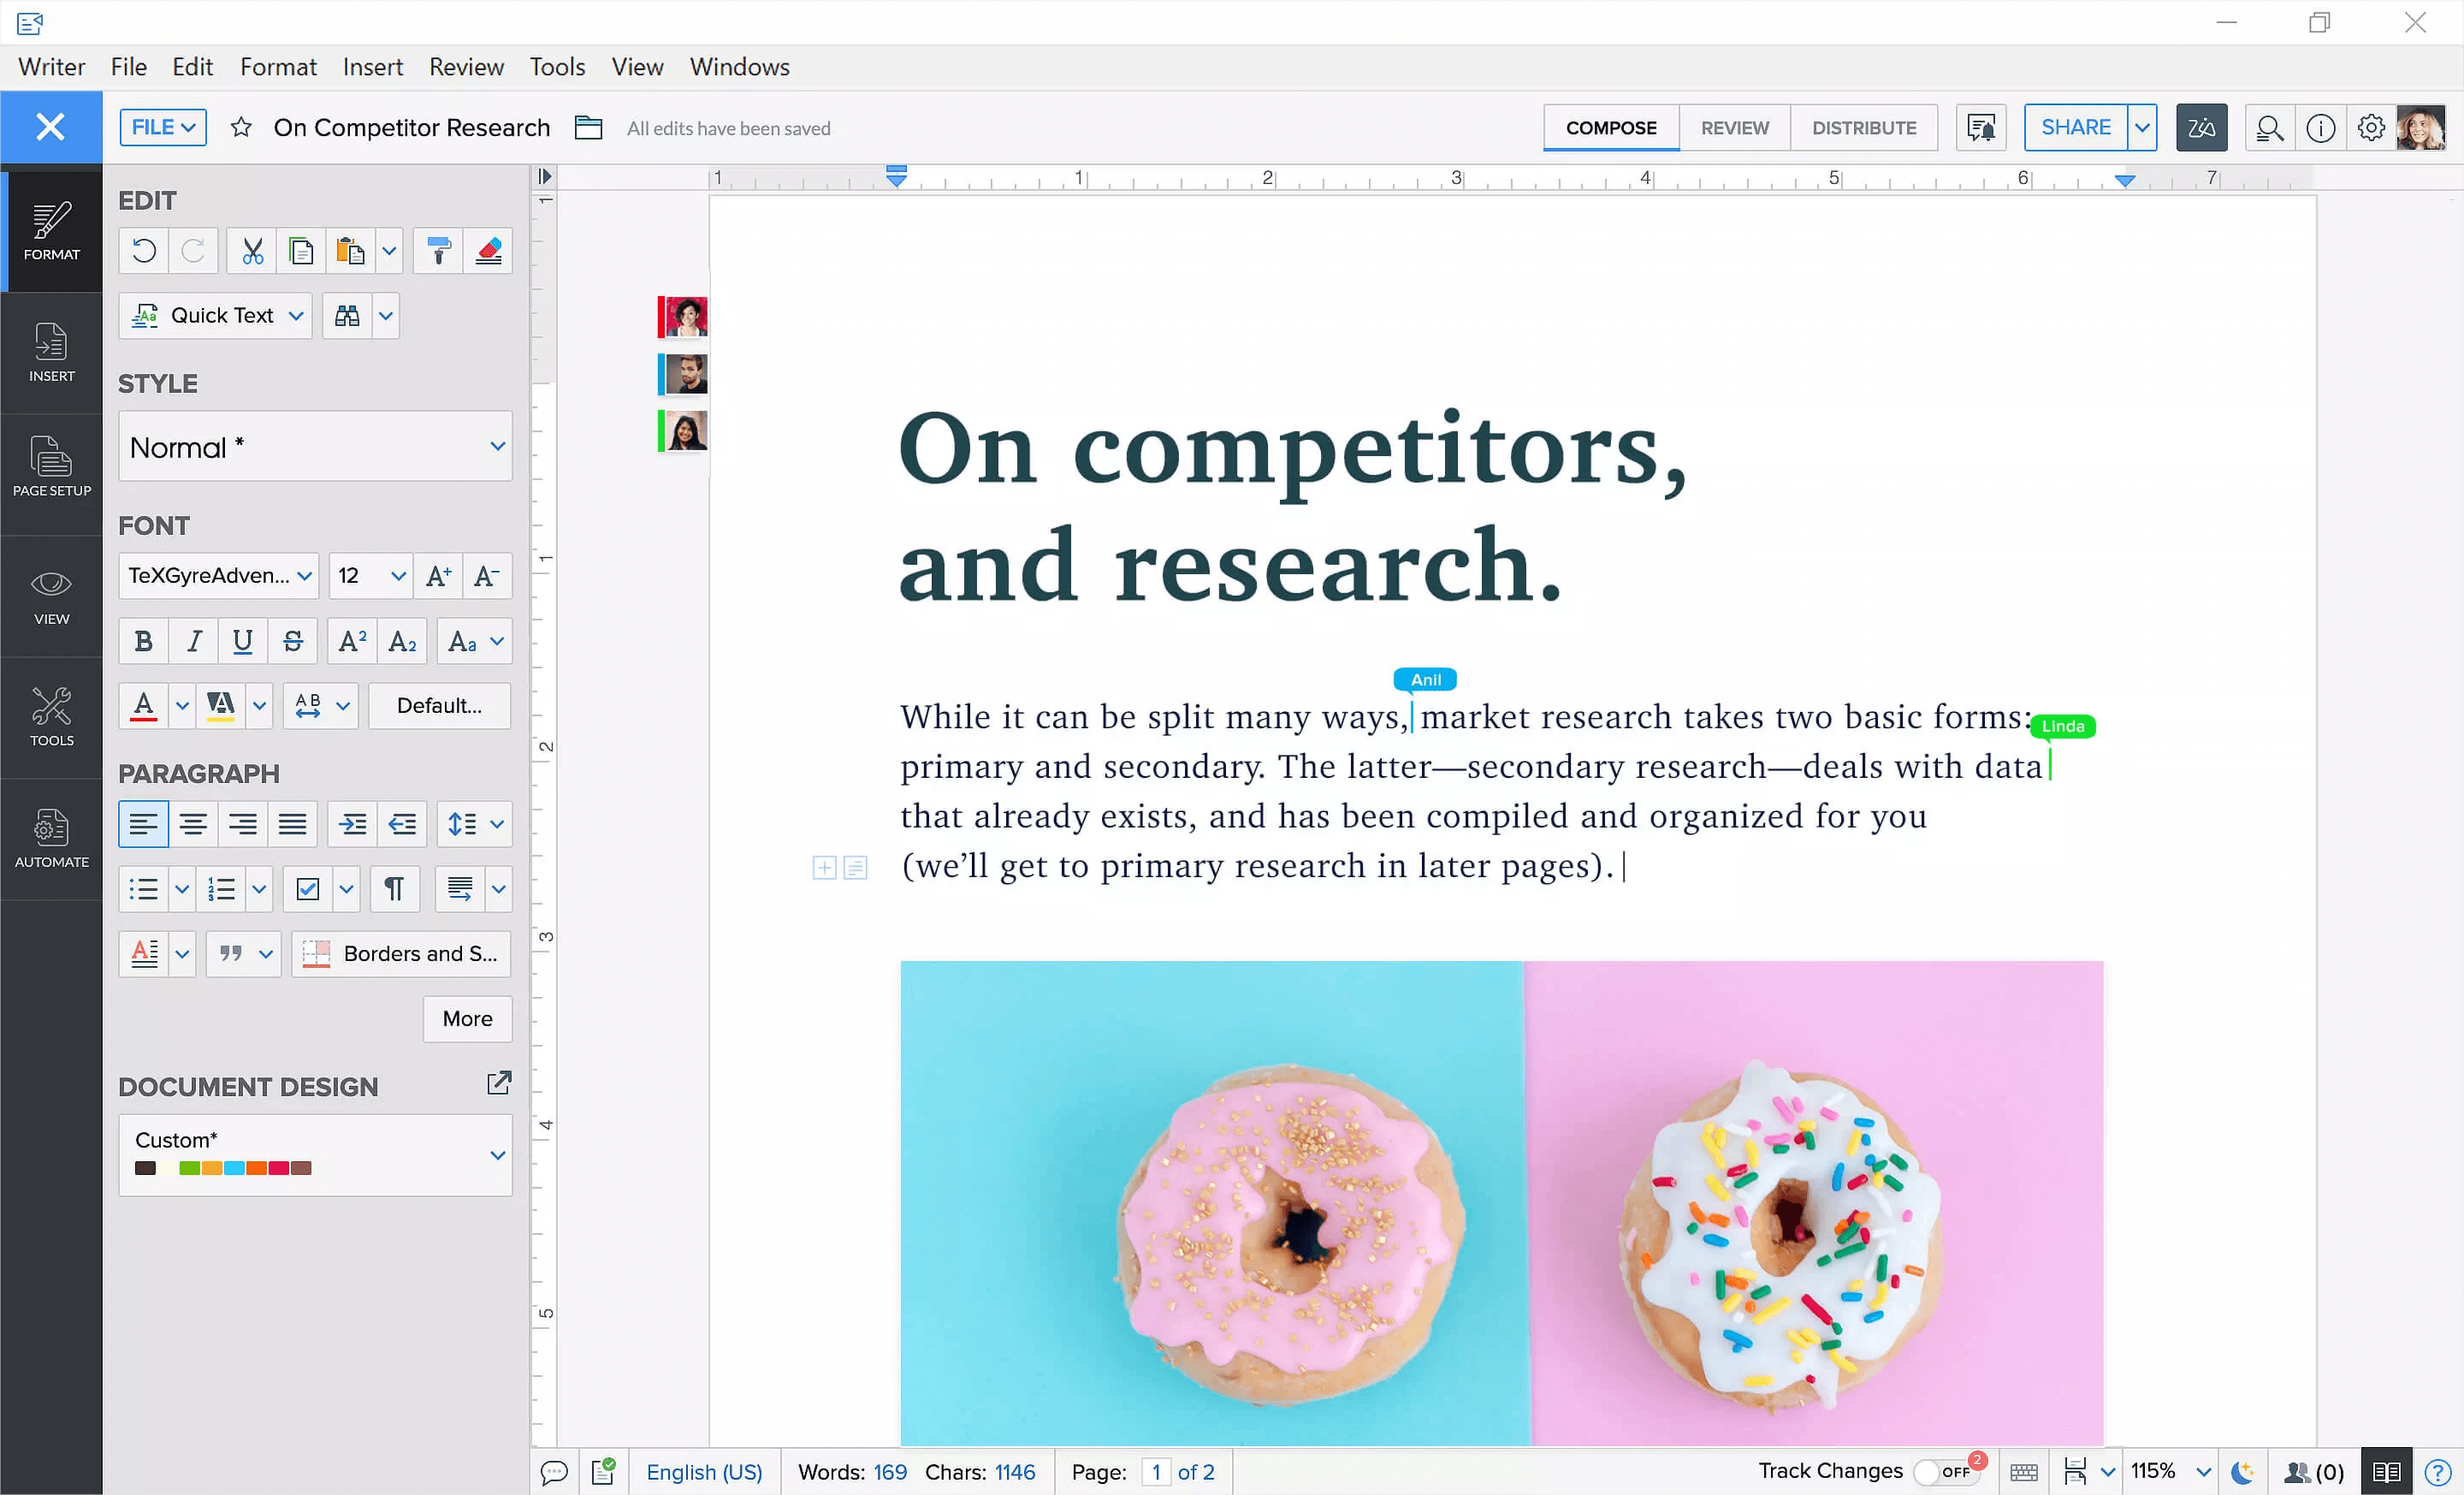 Put your thoughts into words, share documents with your team conveniently using Zoho Writer